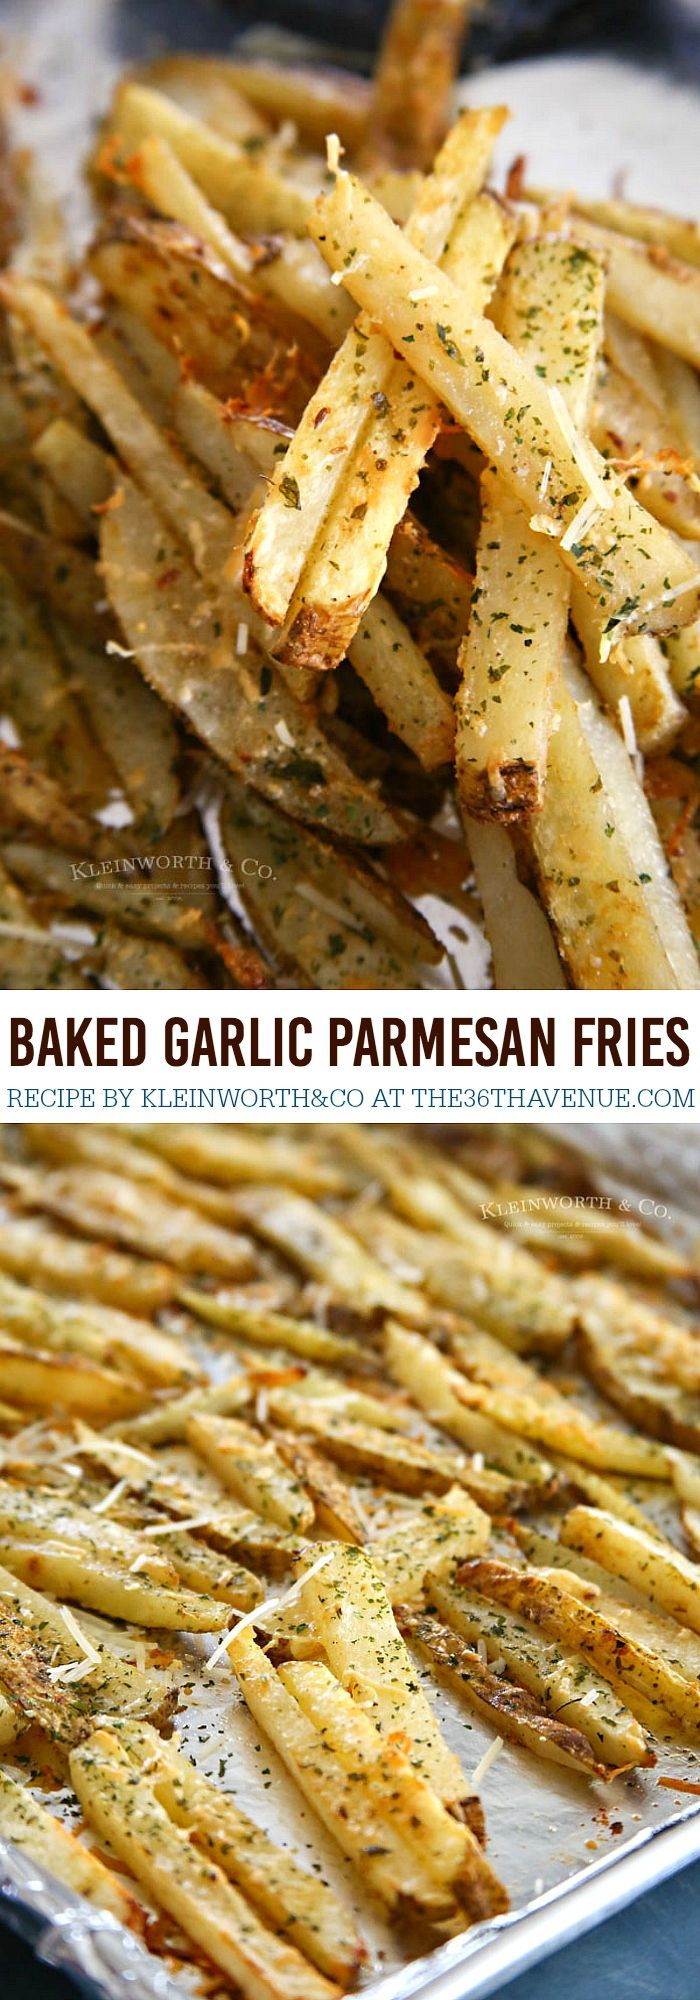 Baked Garlic Parmesan Steak Fries - Easy and delicious side dish to all your summer BBQ dishes. (Baking Pasta Crockpot)